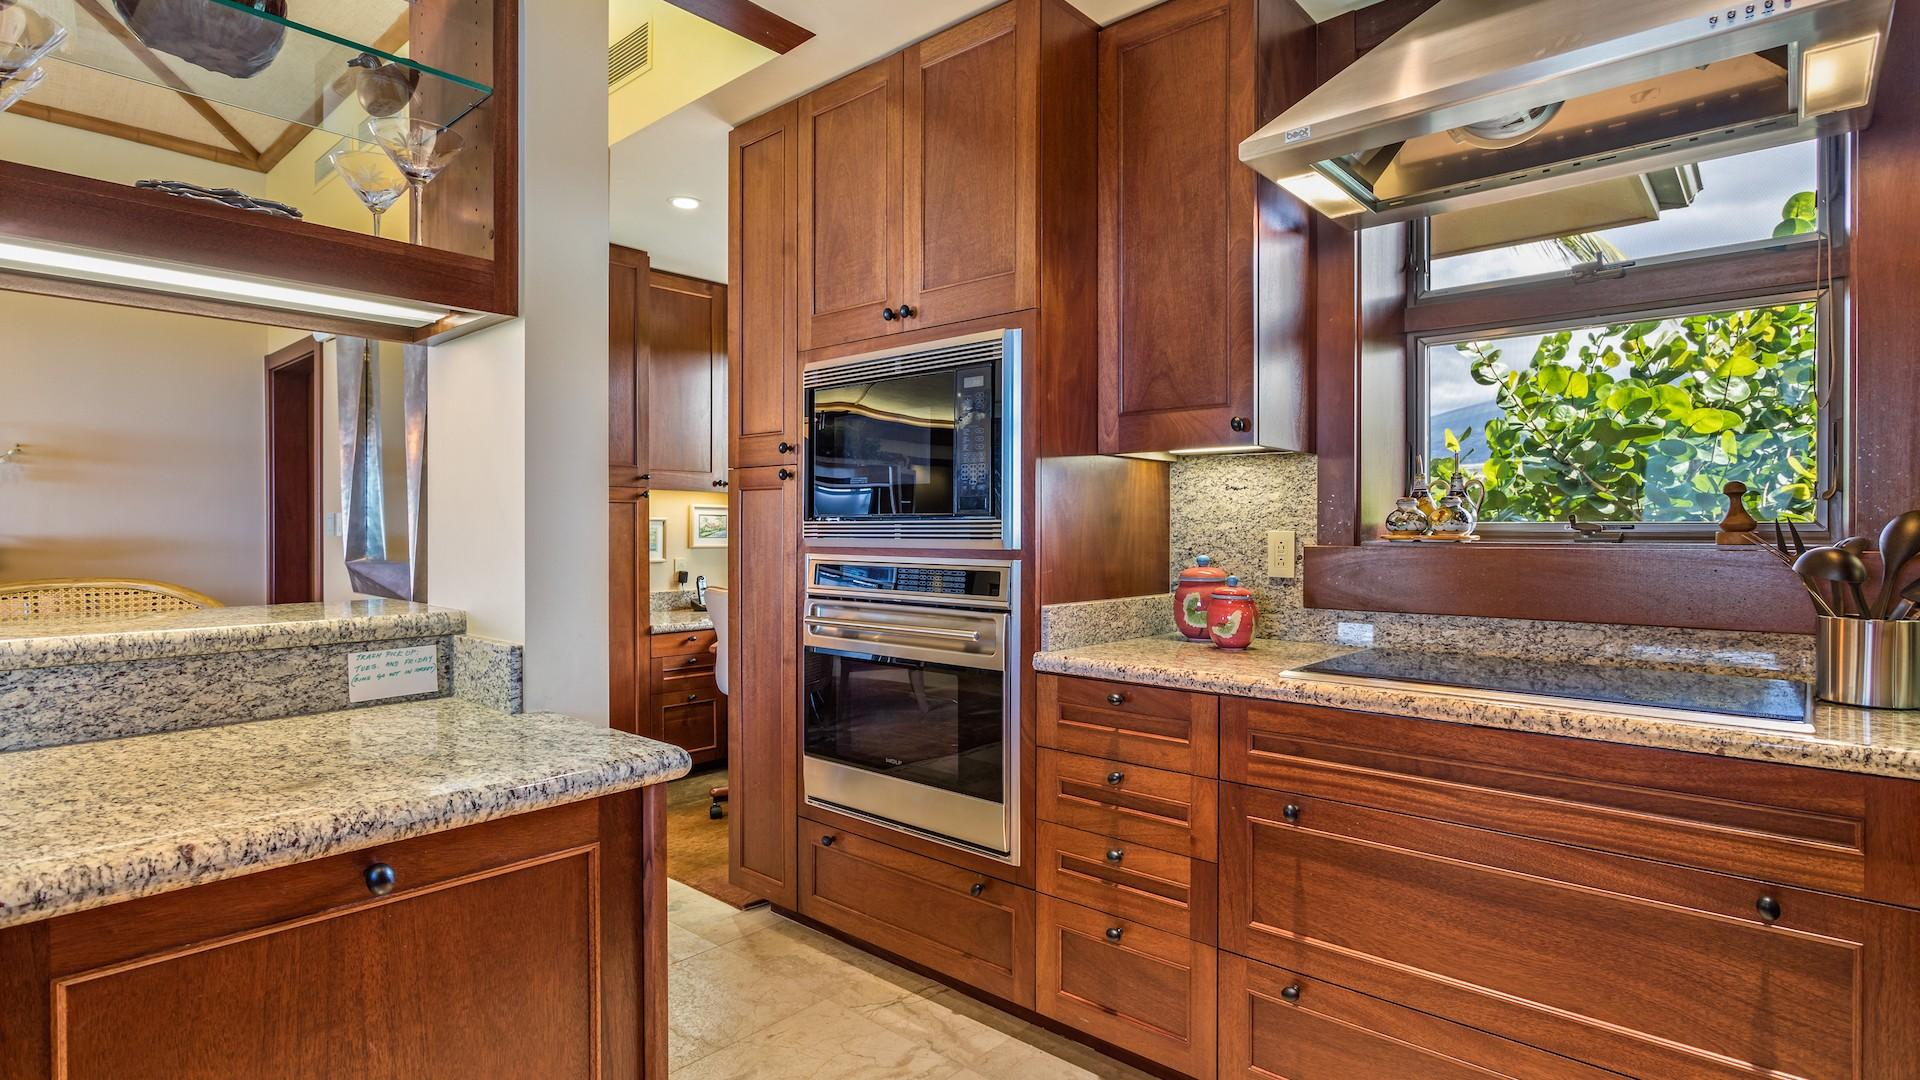 Stainless Steel Appliances & Gleaming Granite Countertops.